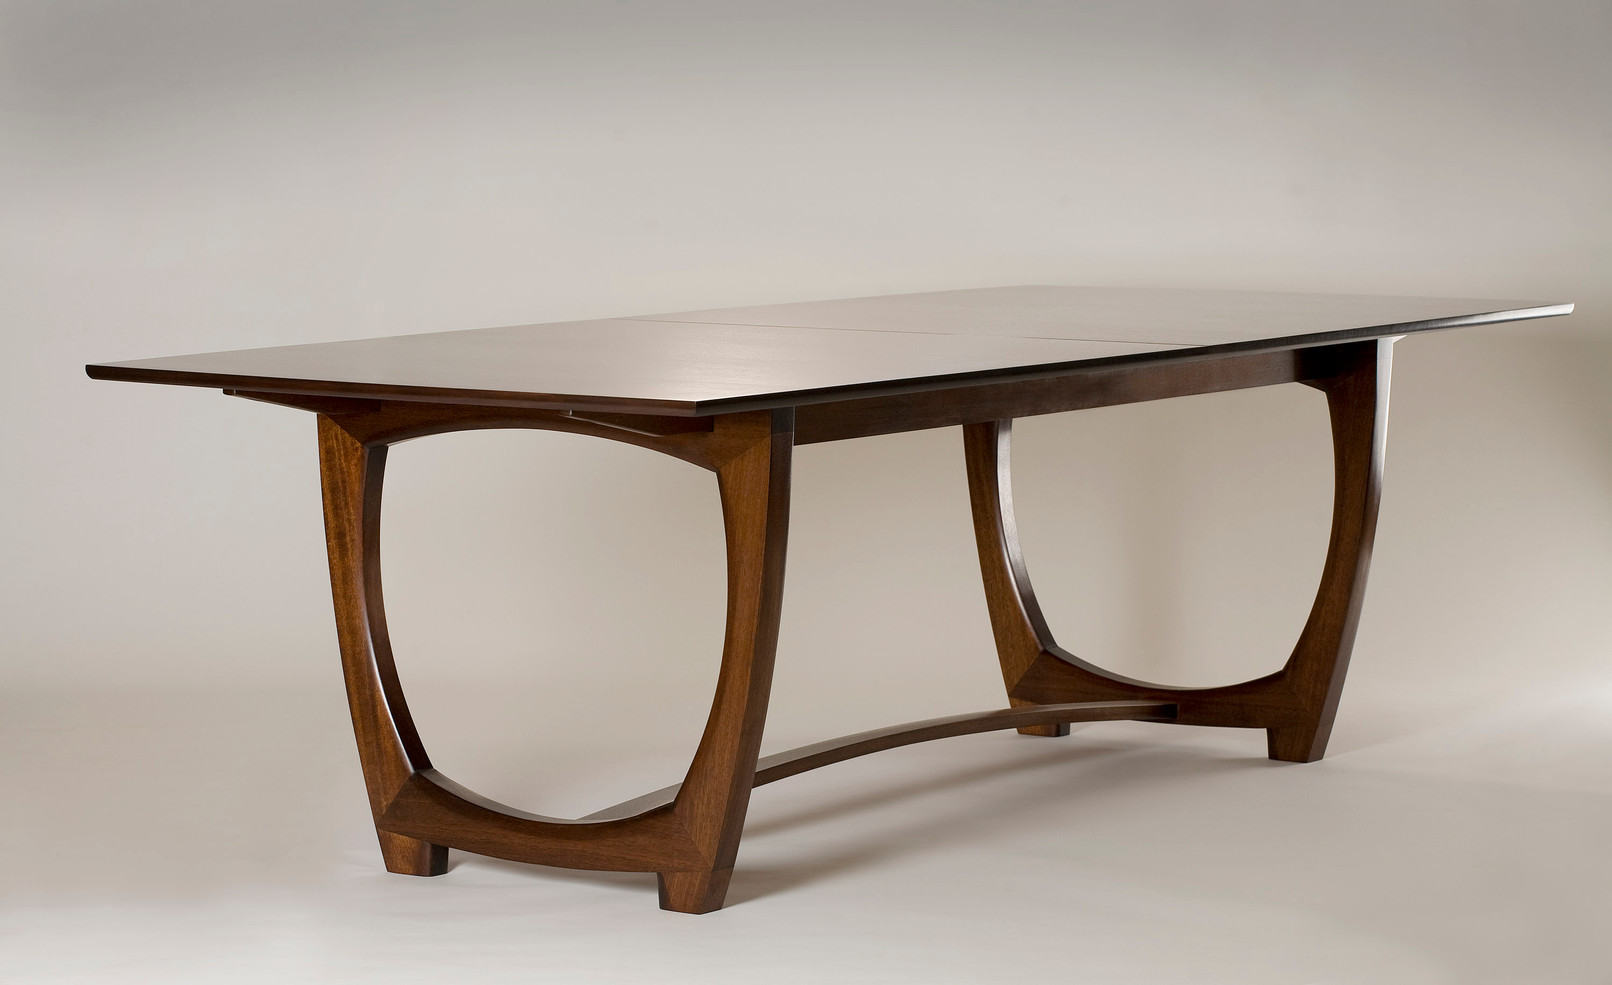 wix_mahogany_expanding_dining_table.jpg